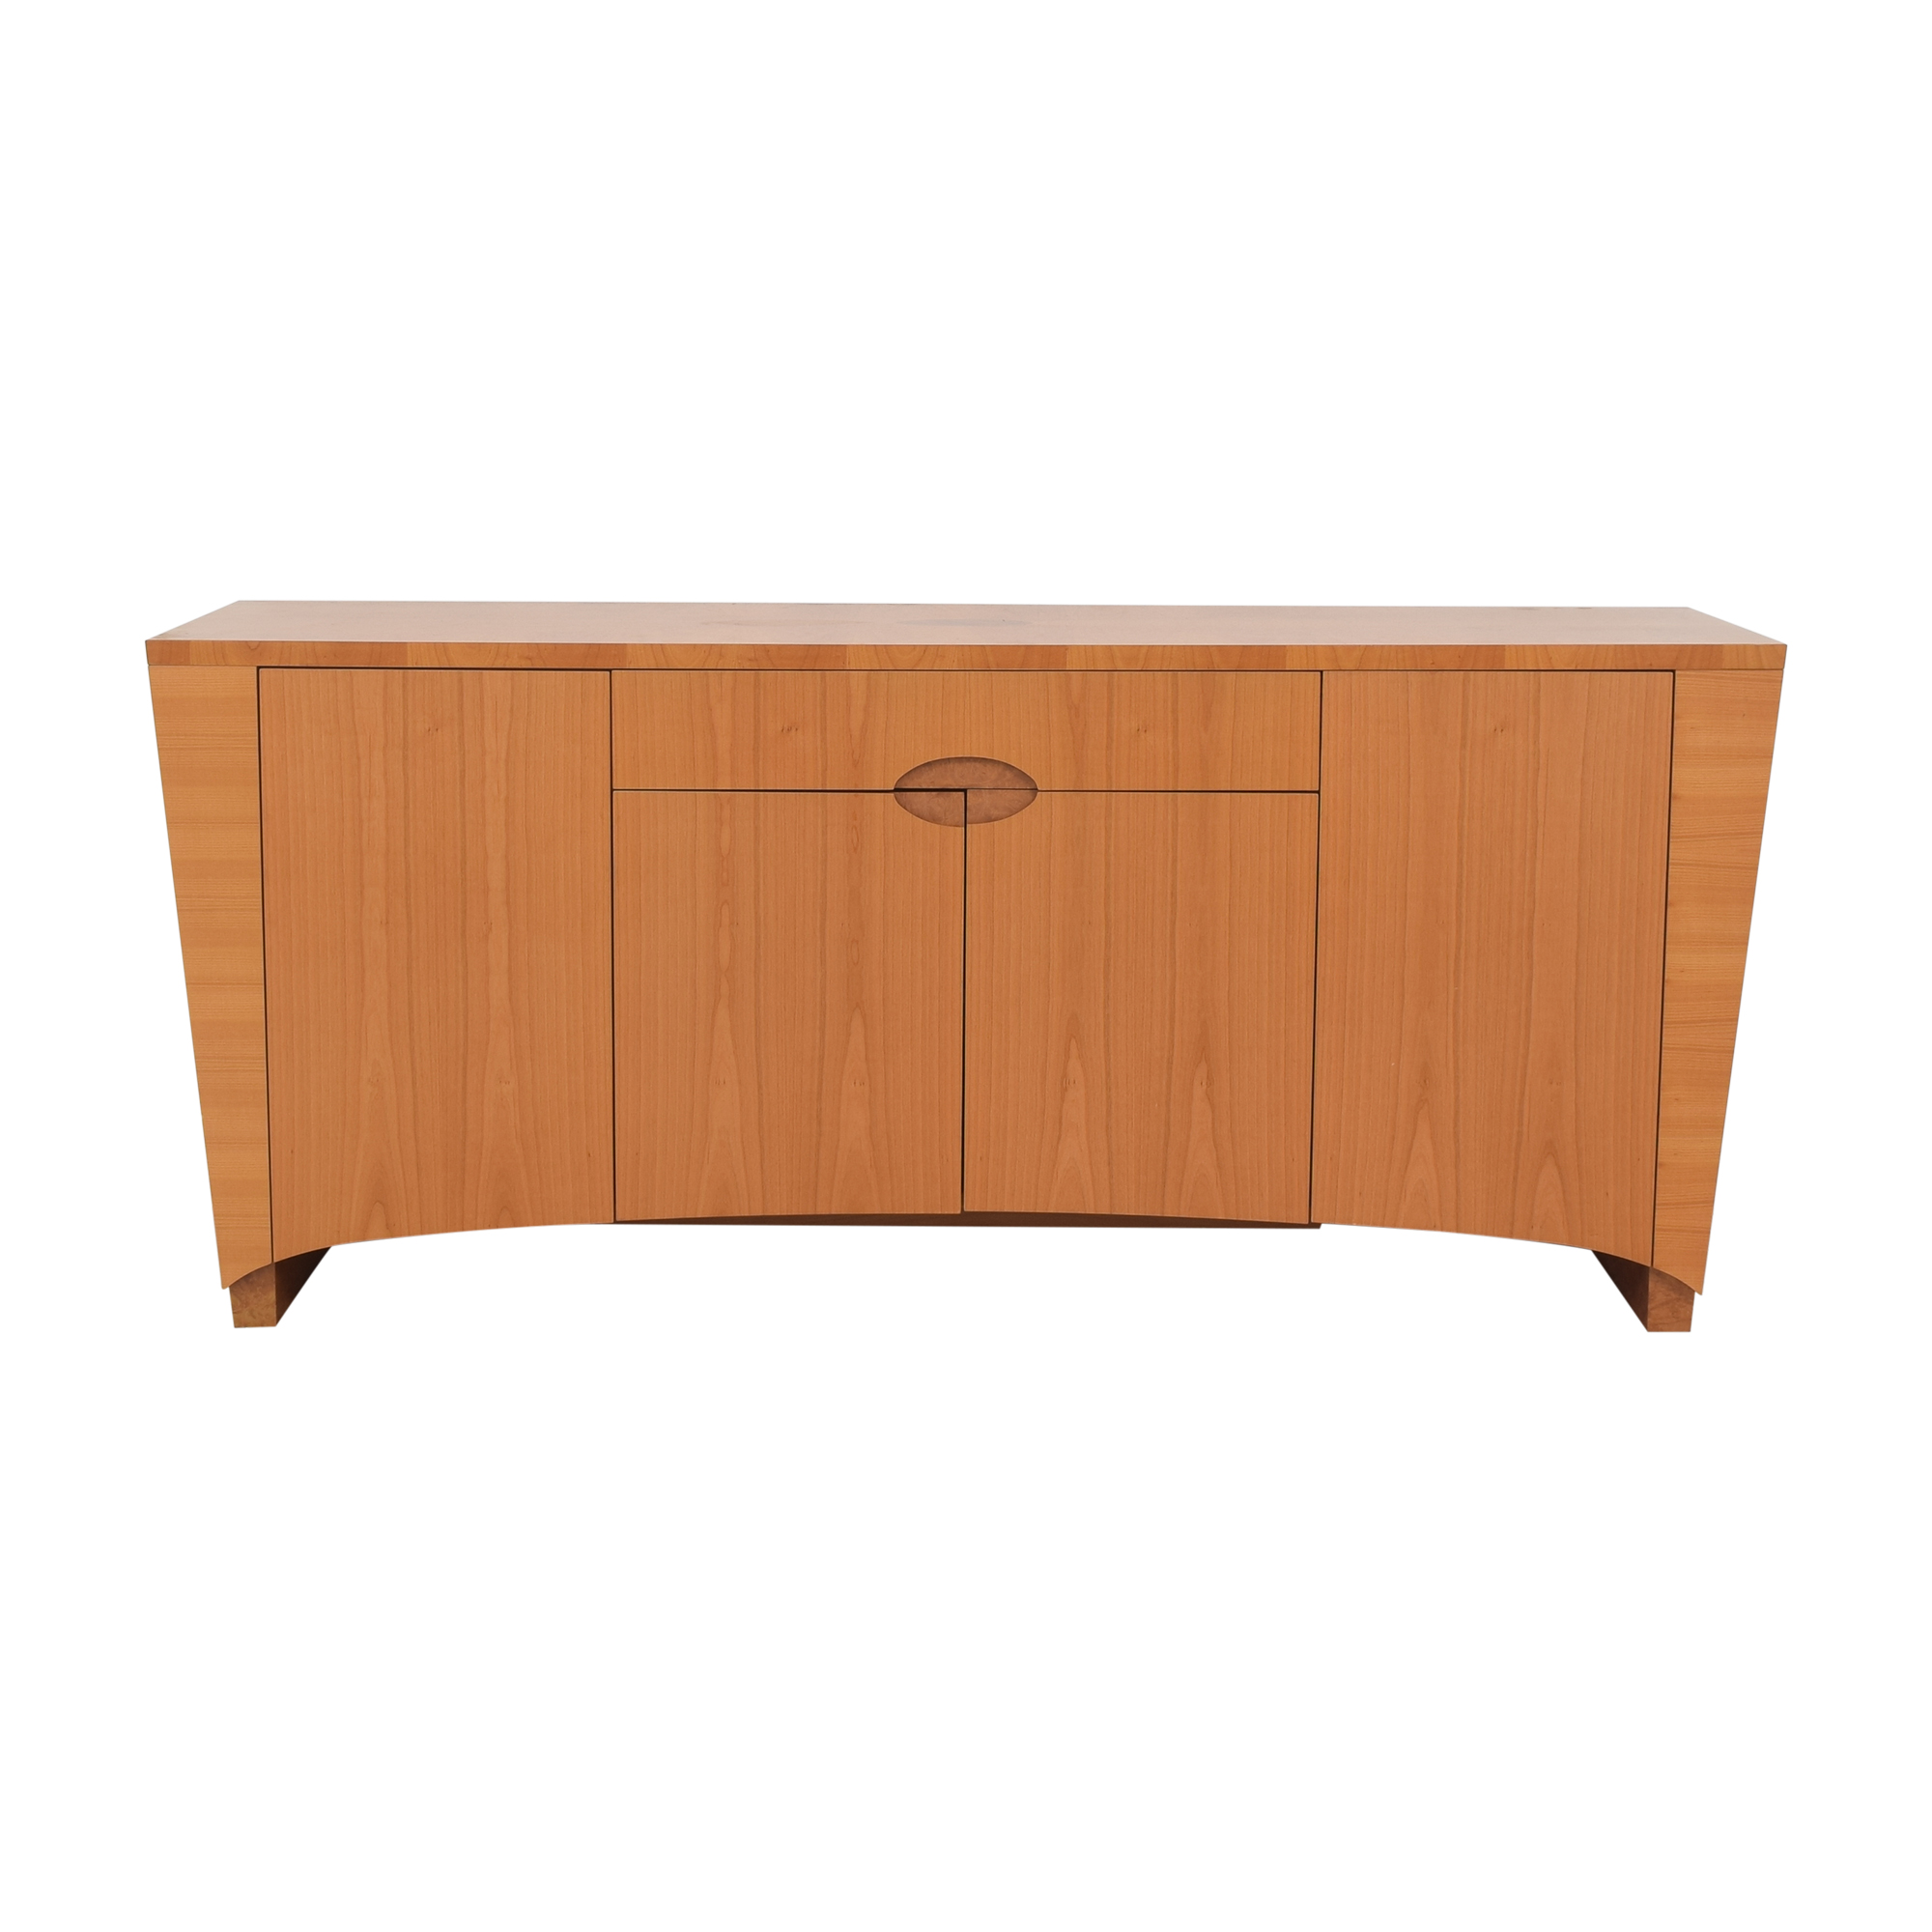 Excelsior Designs Excelsior Designs Italian Modern Style Buffet discount